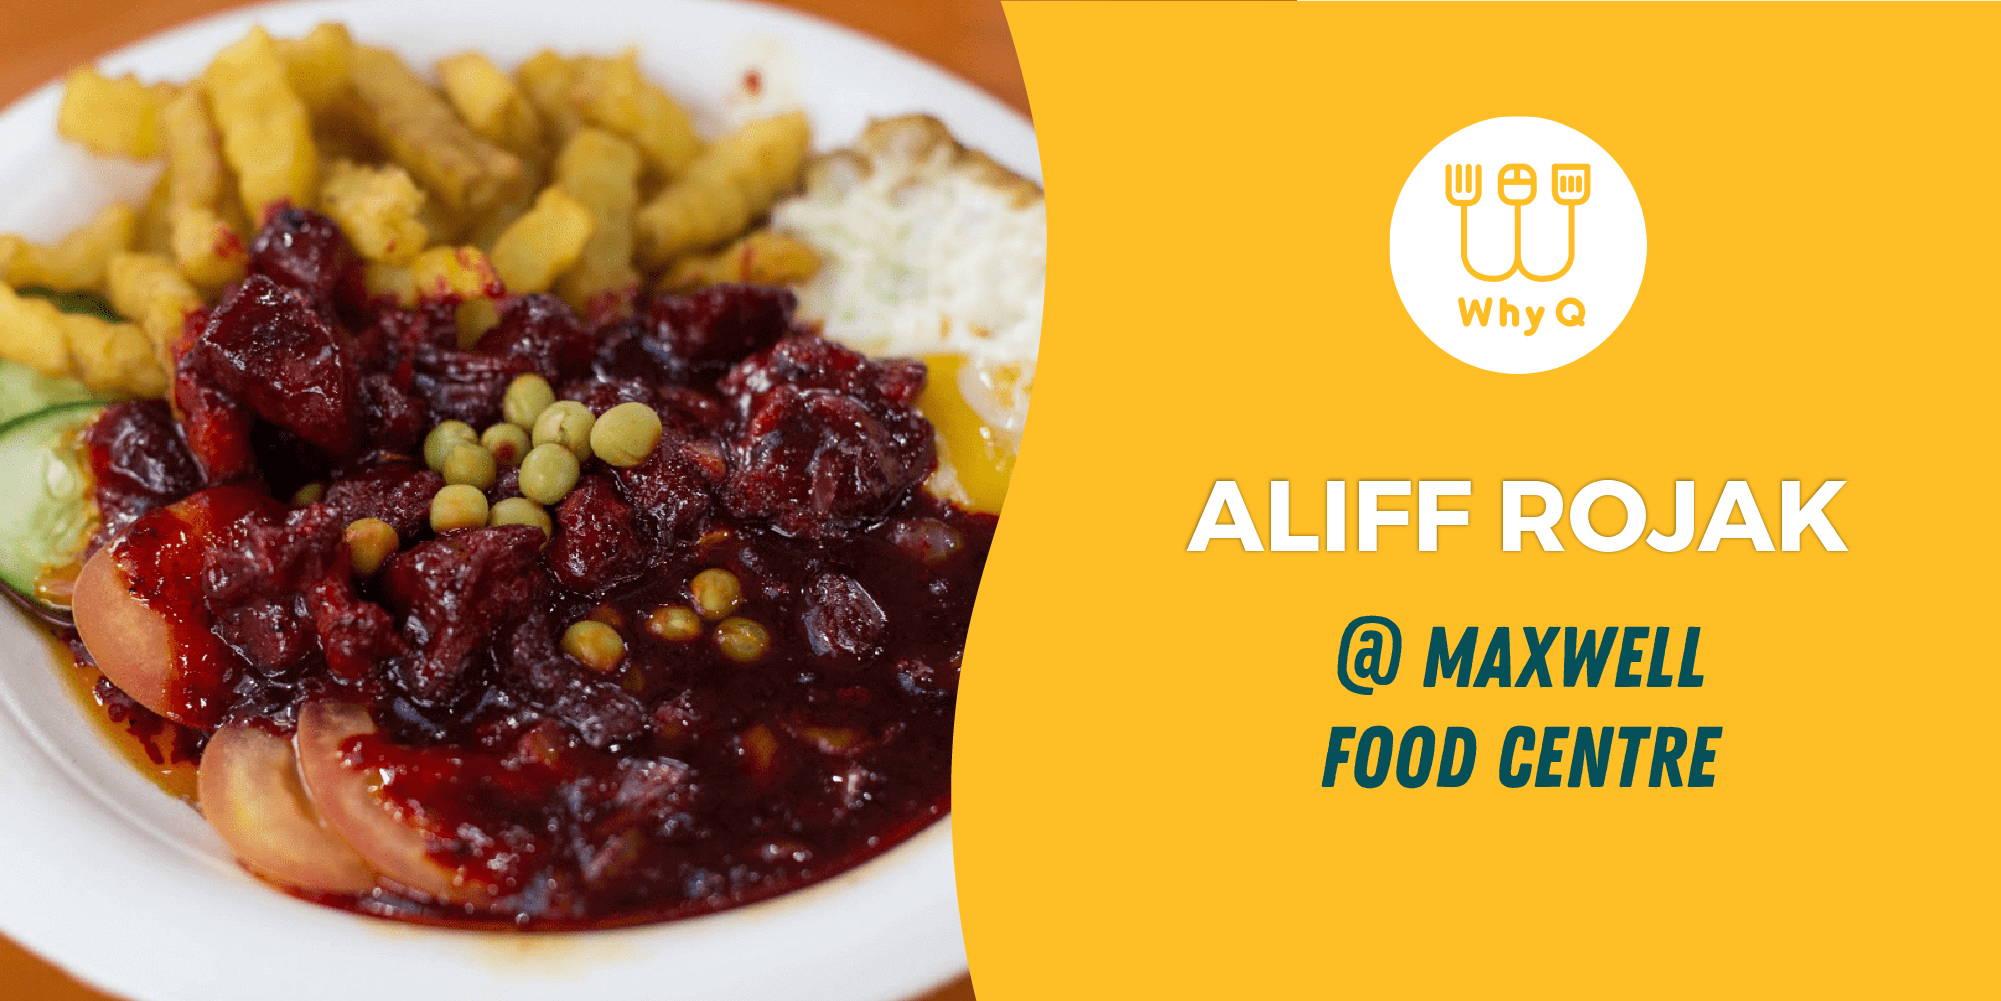 WhyQ halal guide Aliff Rojak delivery